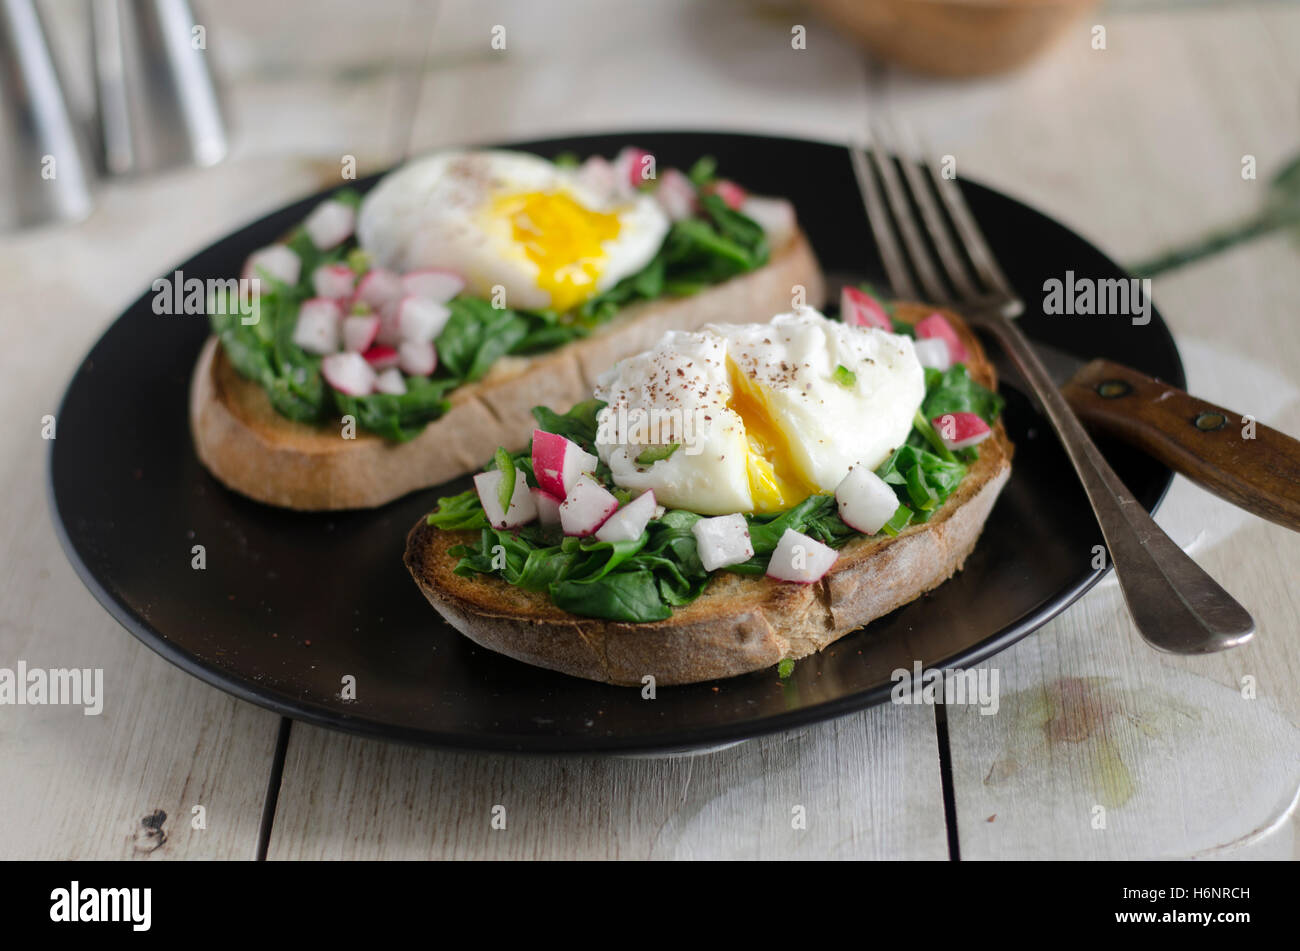 Toasted sourdough with spinach and poached egg - Stock Image